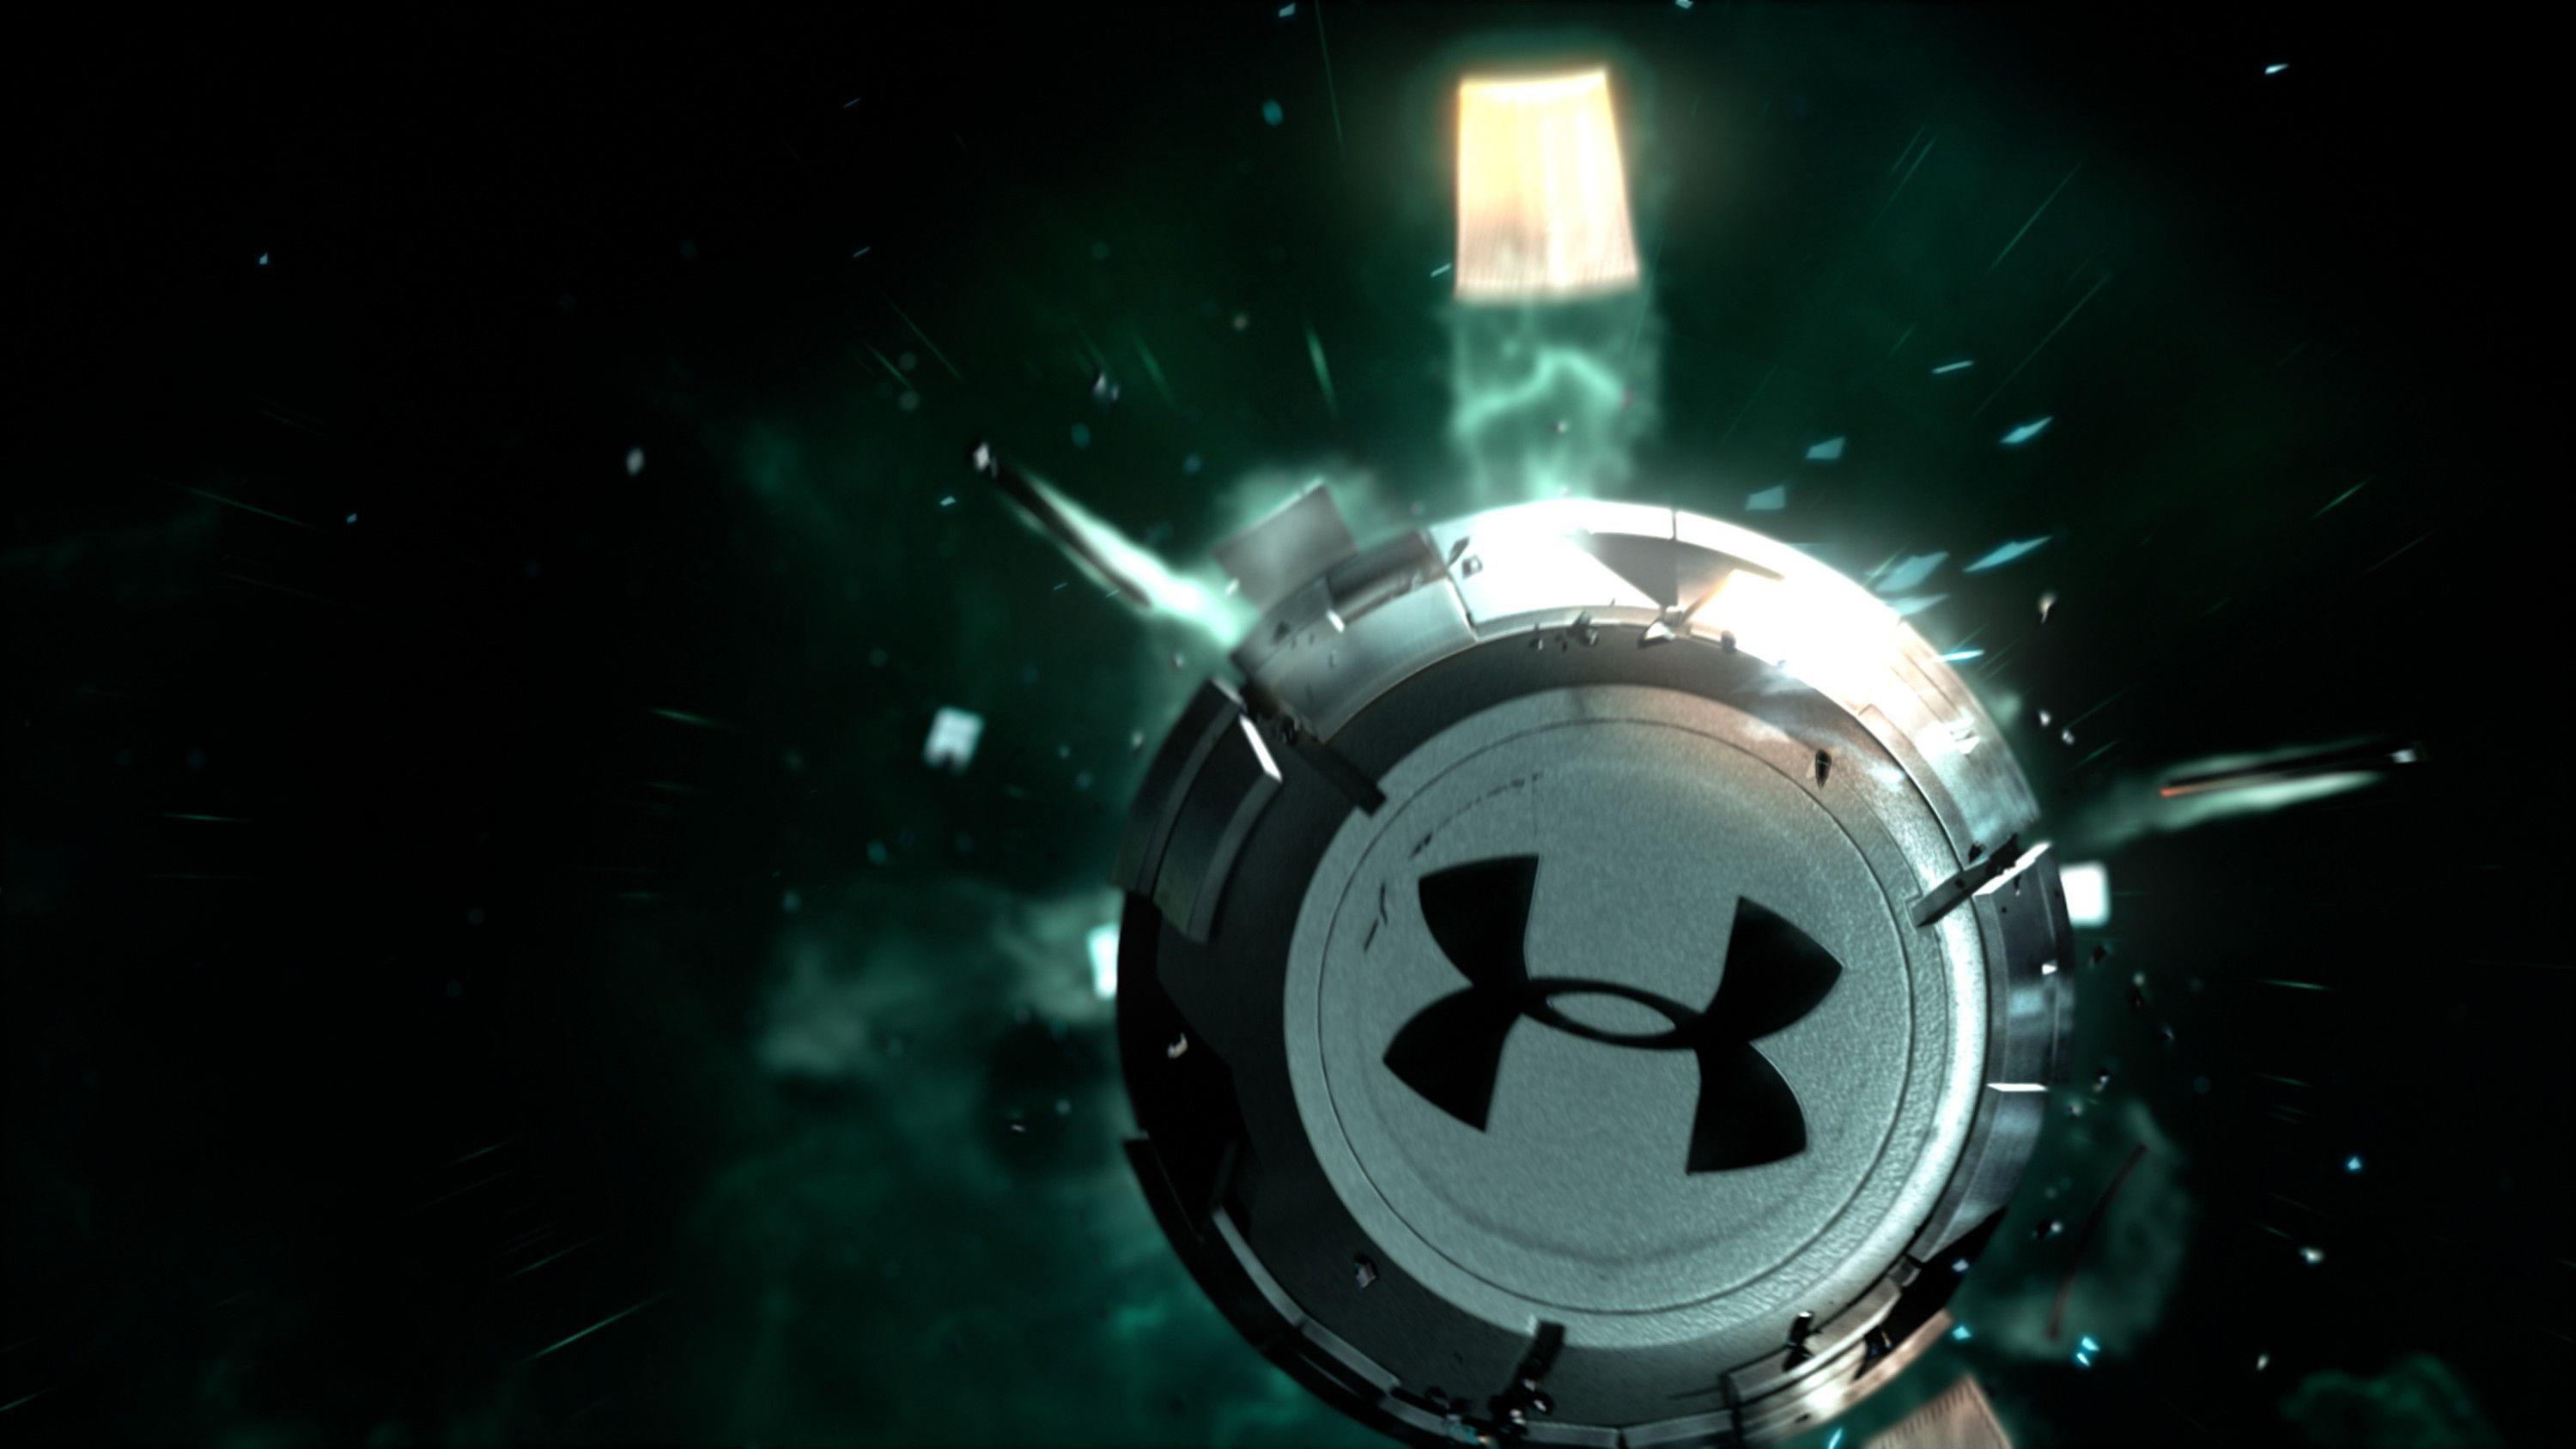 Wallpapers For > Under Armour Wallpaper For Iphone 5